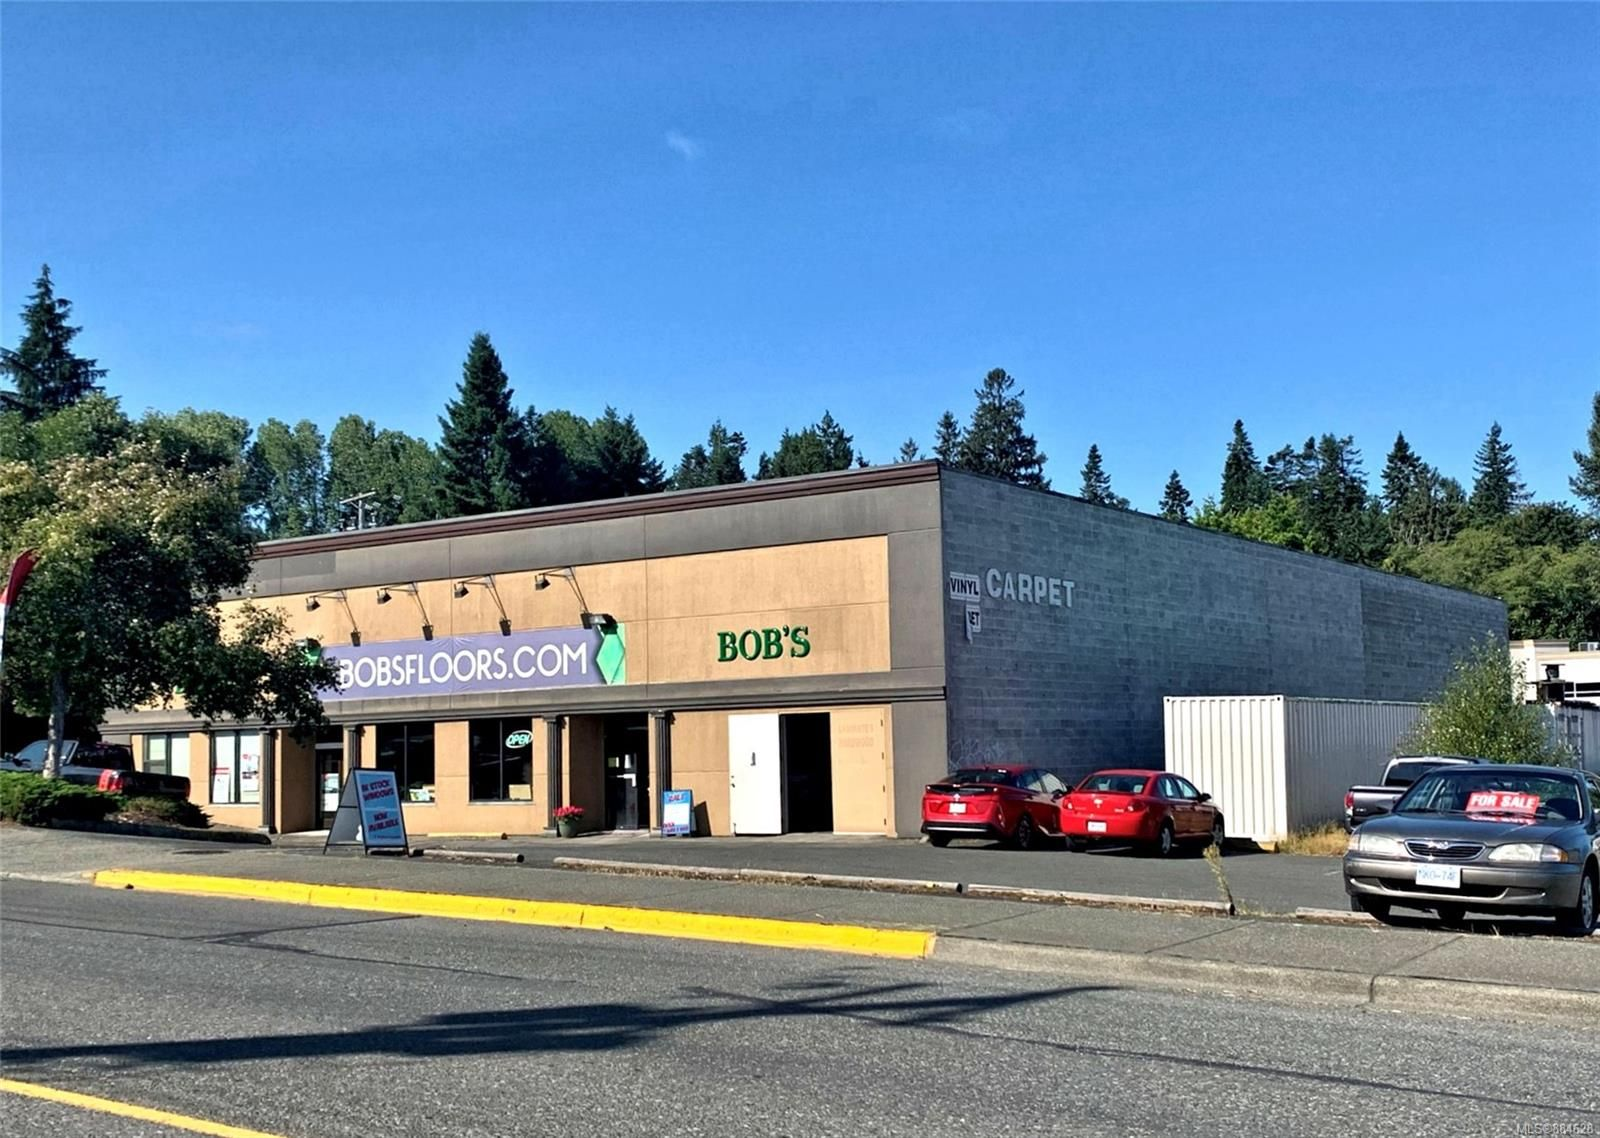 Main Photo: 904 Ironwood St in : CR Campbell River Central Mixed Use for sale (Campbell River)  : MLS®# 884628